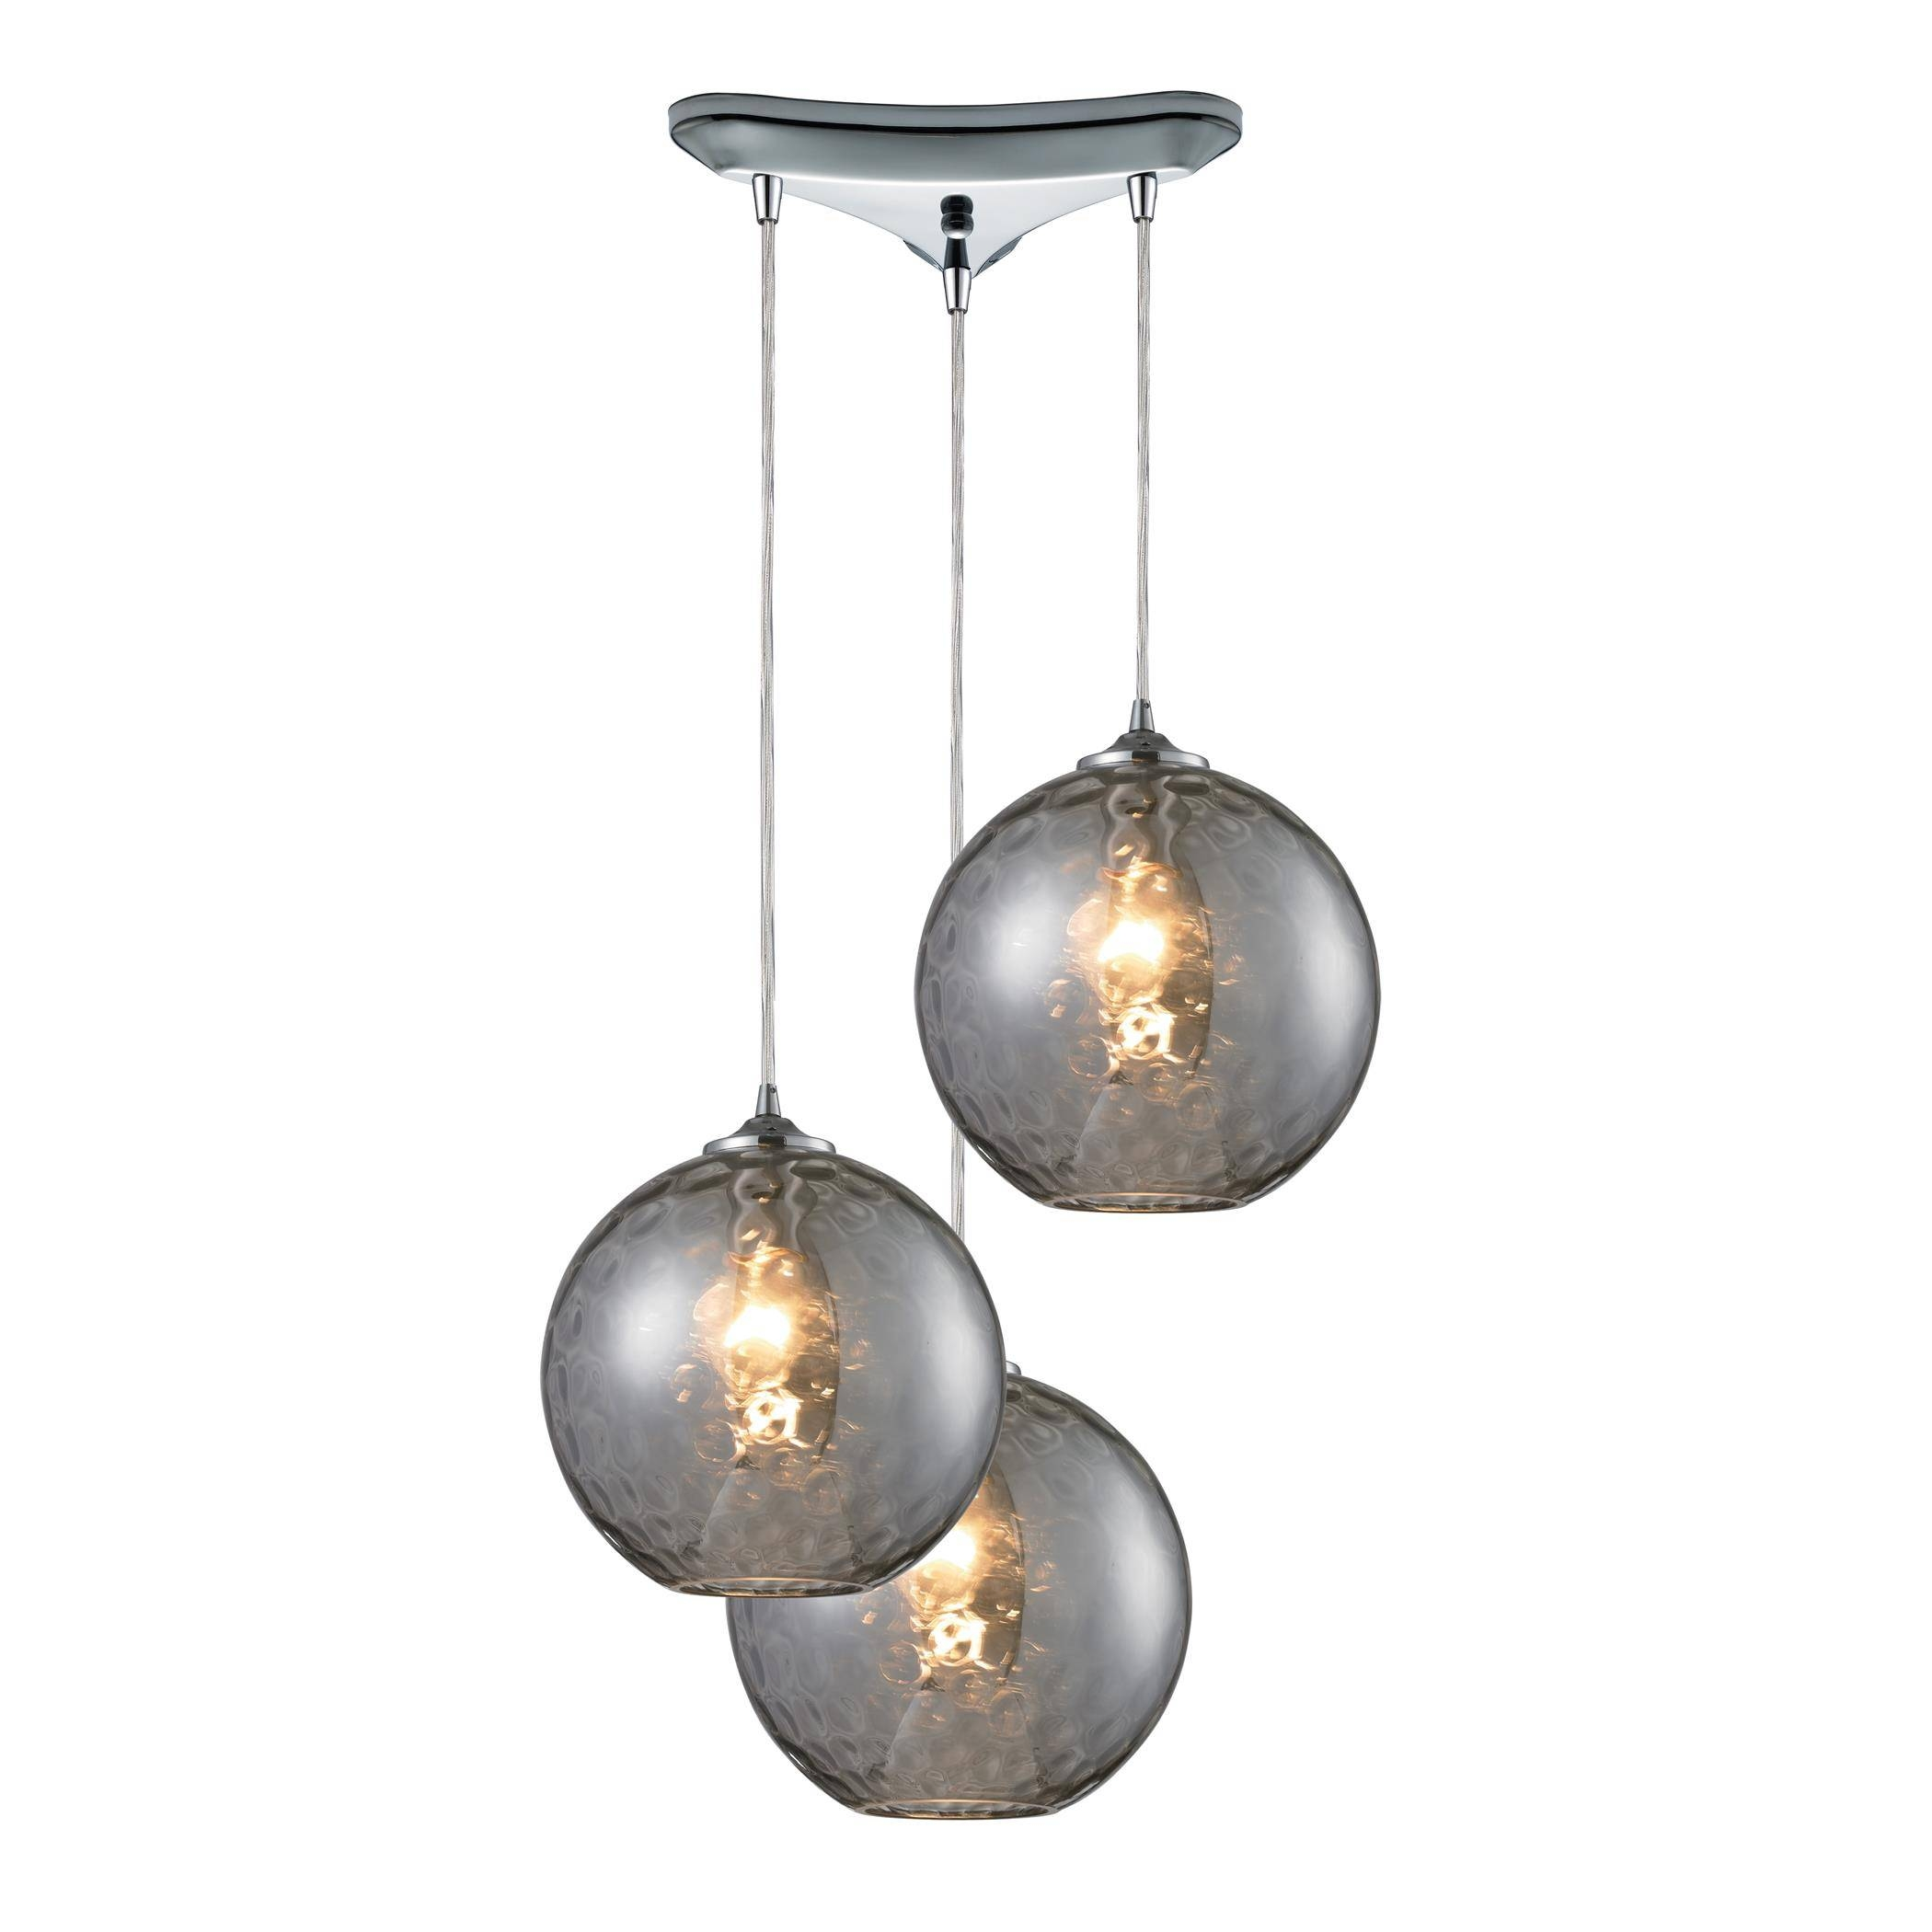 Astonishing Smoked Glass Pendant Light 52 For Your Pull Down within Pull Down Pendant Lights (Image 3 of 15)